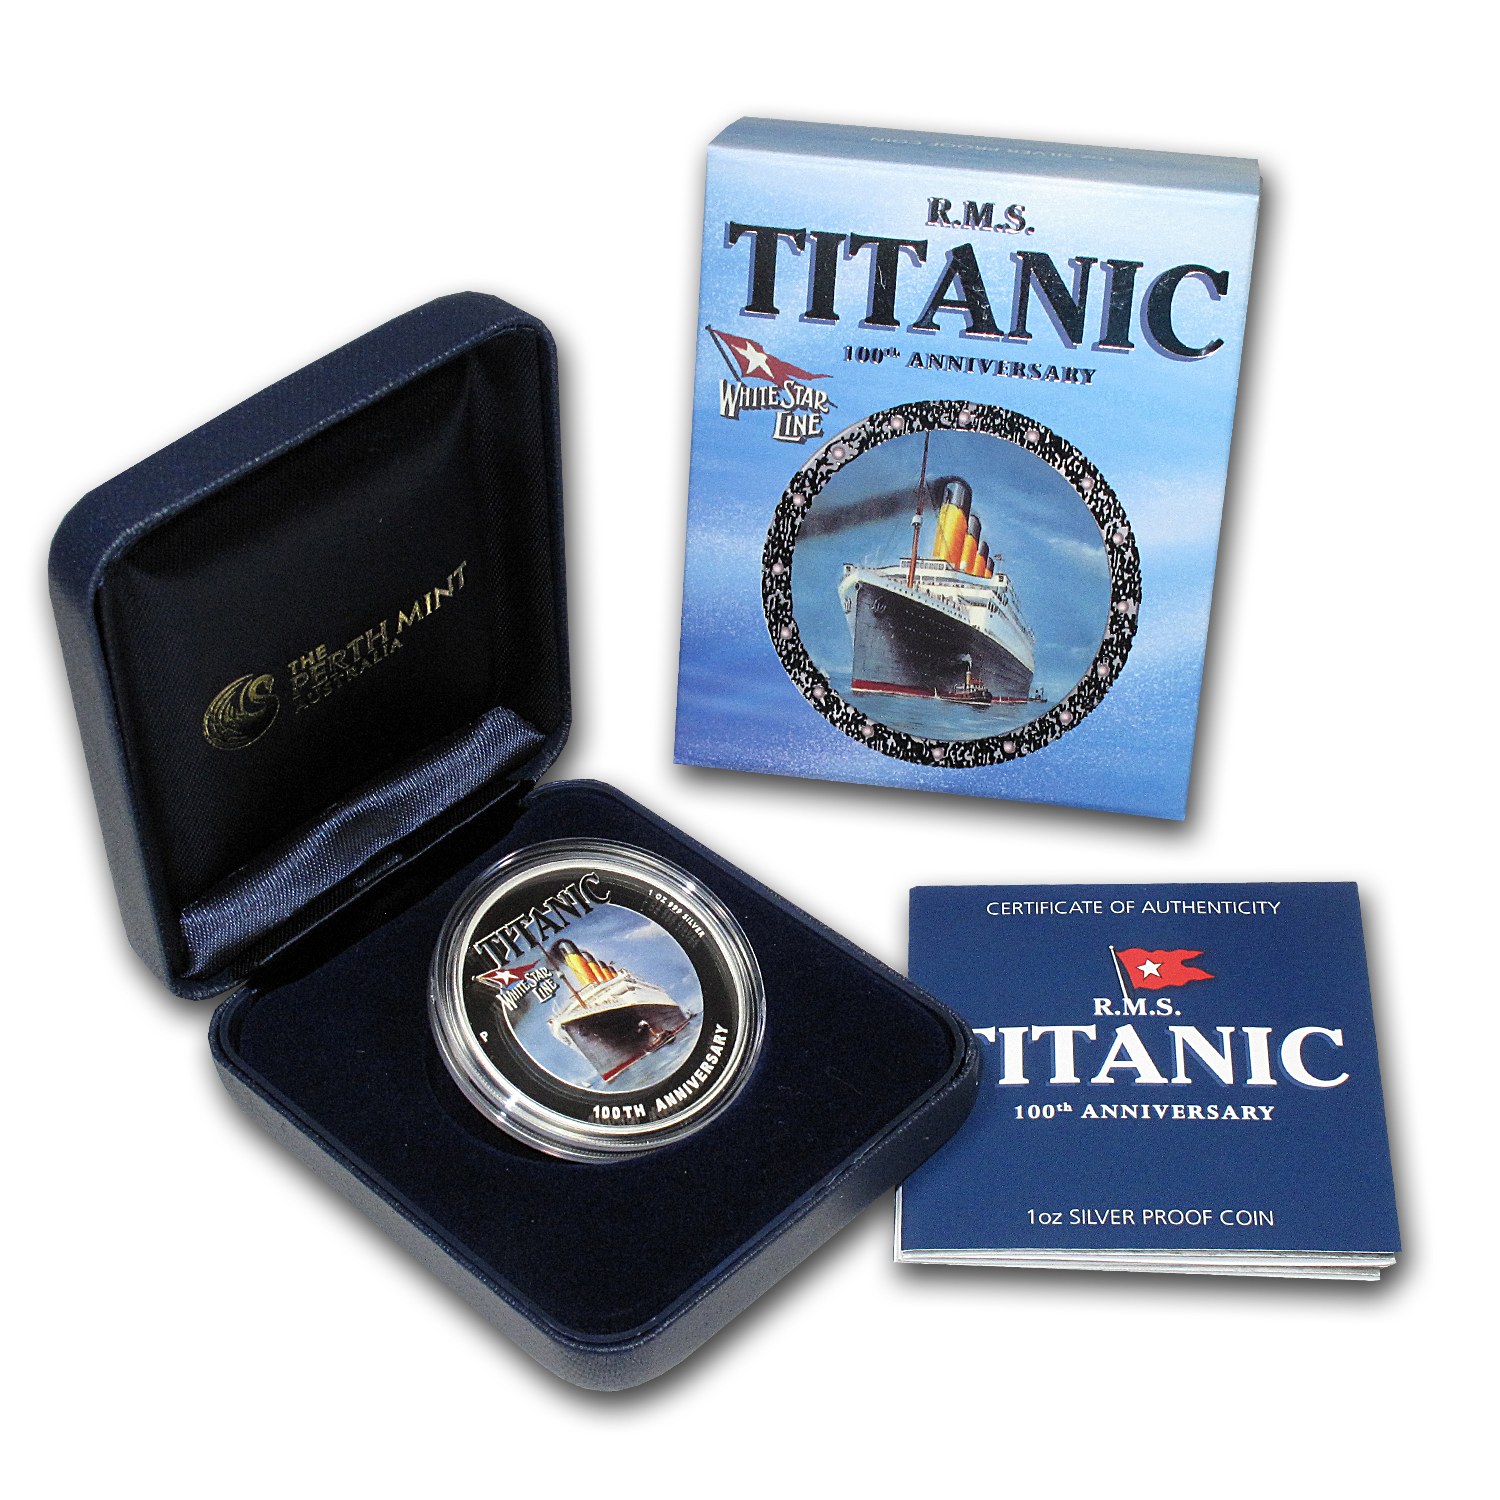 2012 Tuvalu 1 oz Silver R.M.S. Titanic Proof (100th Anniversary)